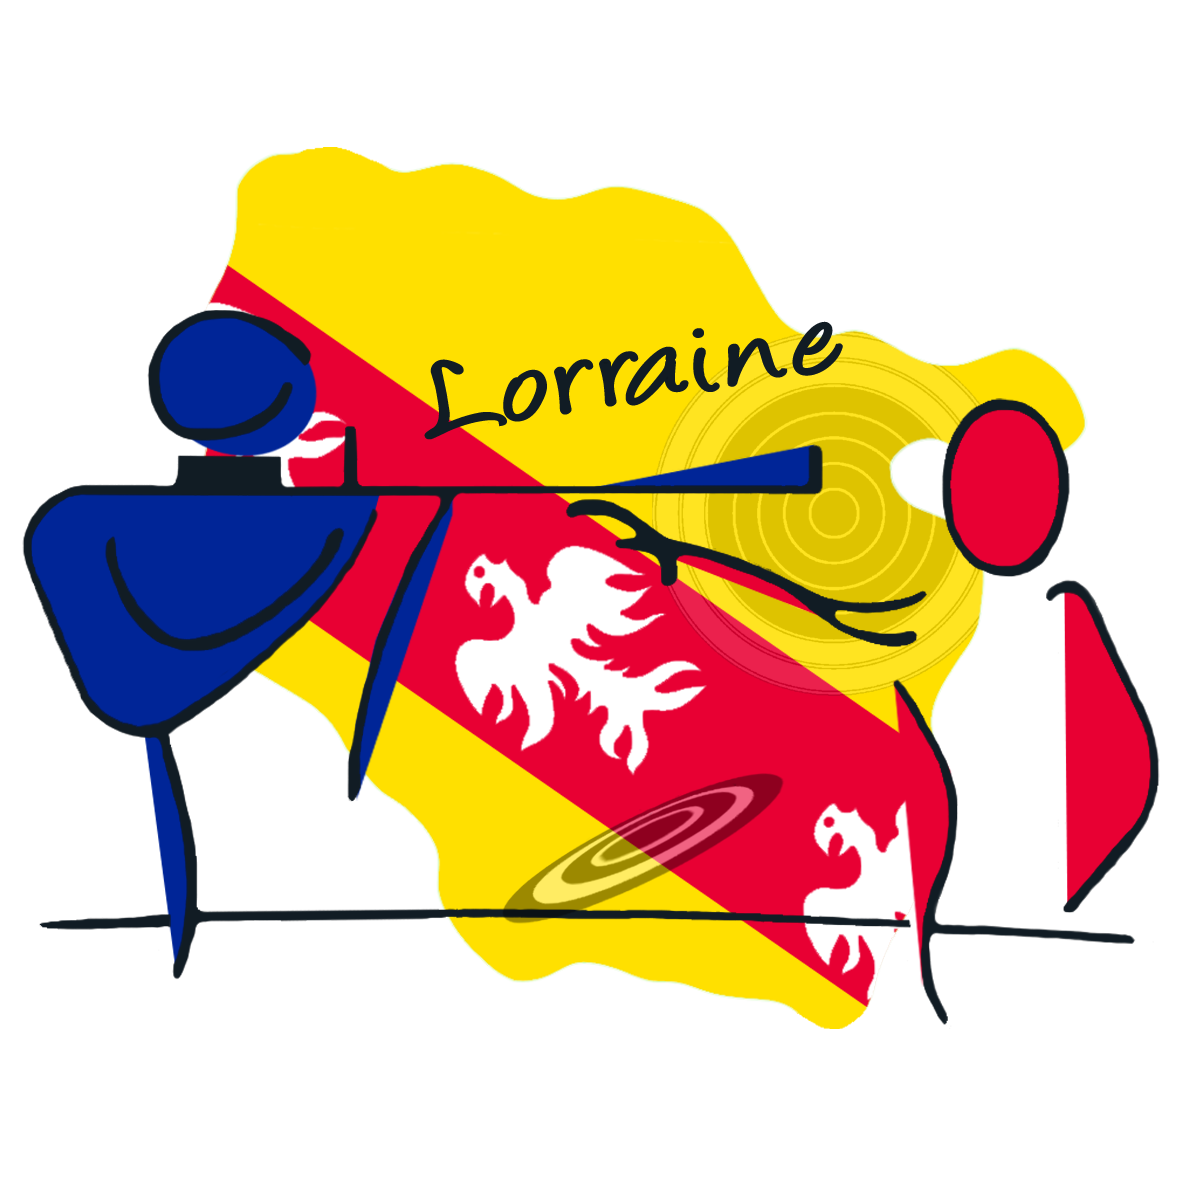 12 LORRAINE.png